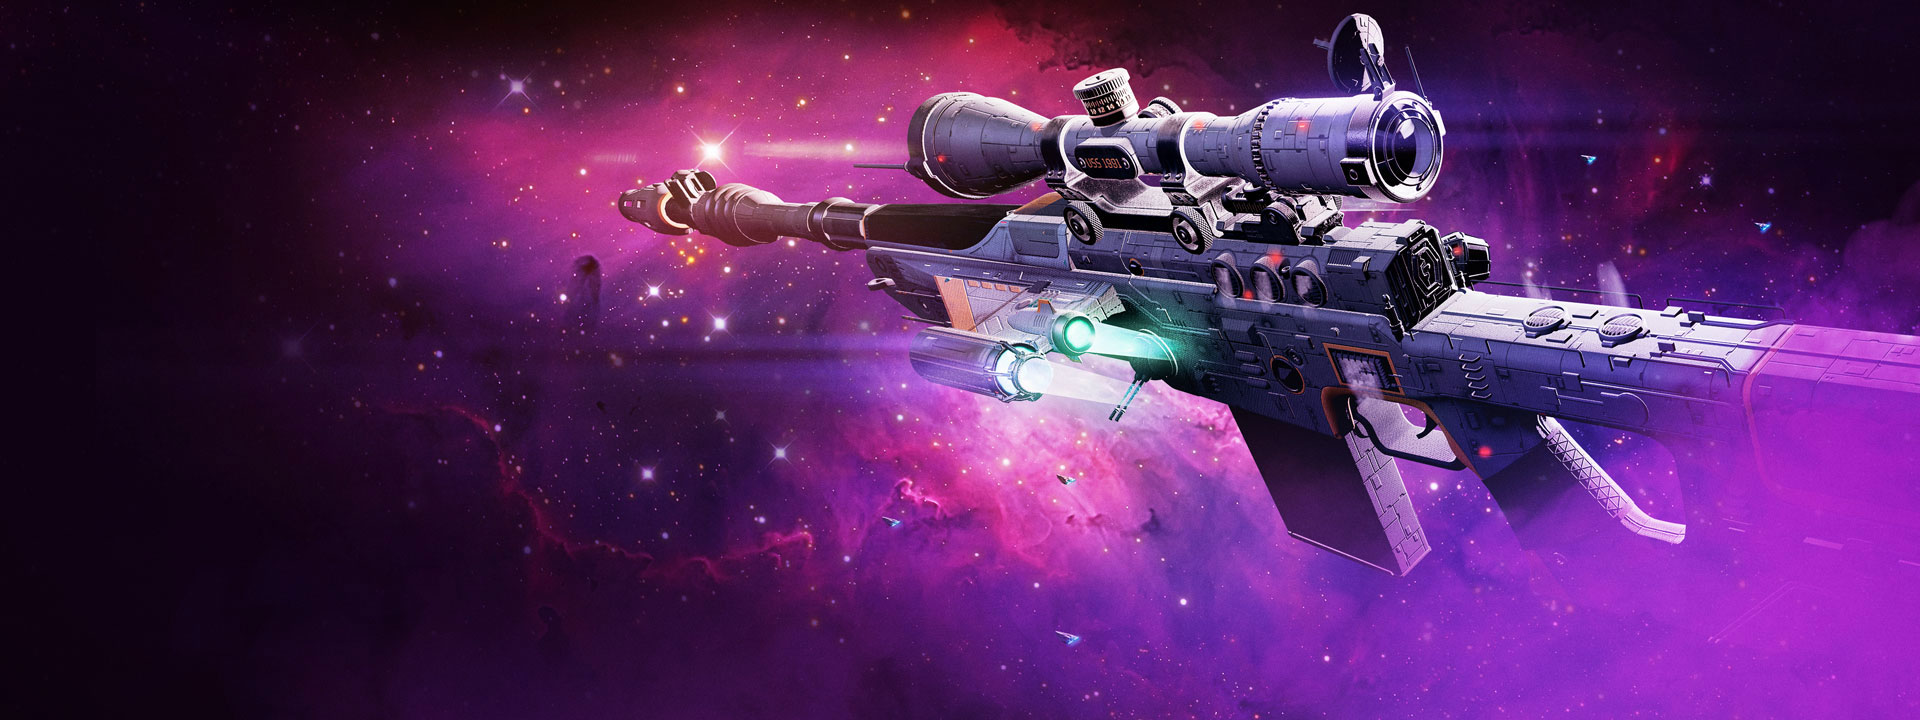 Gun on a space-themed background